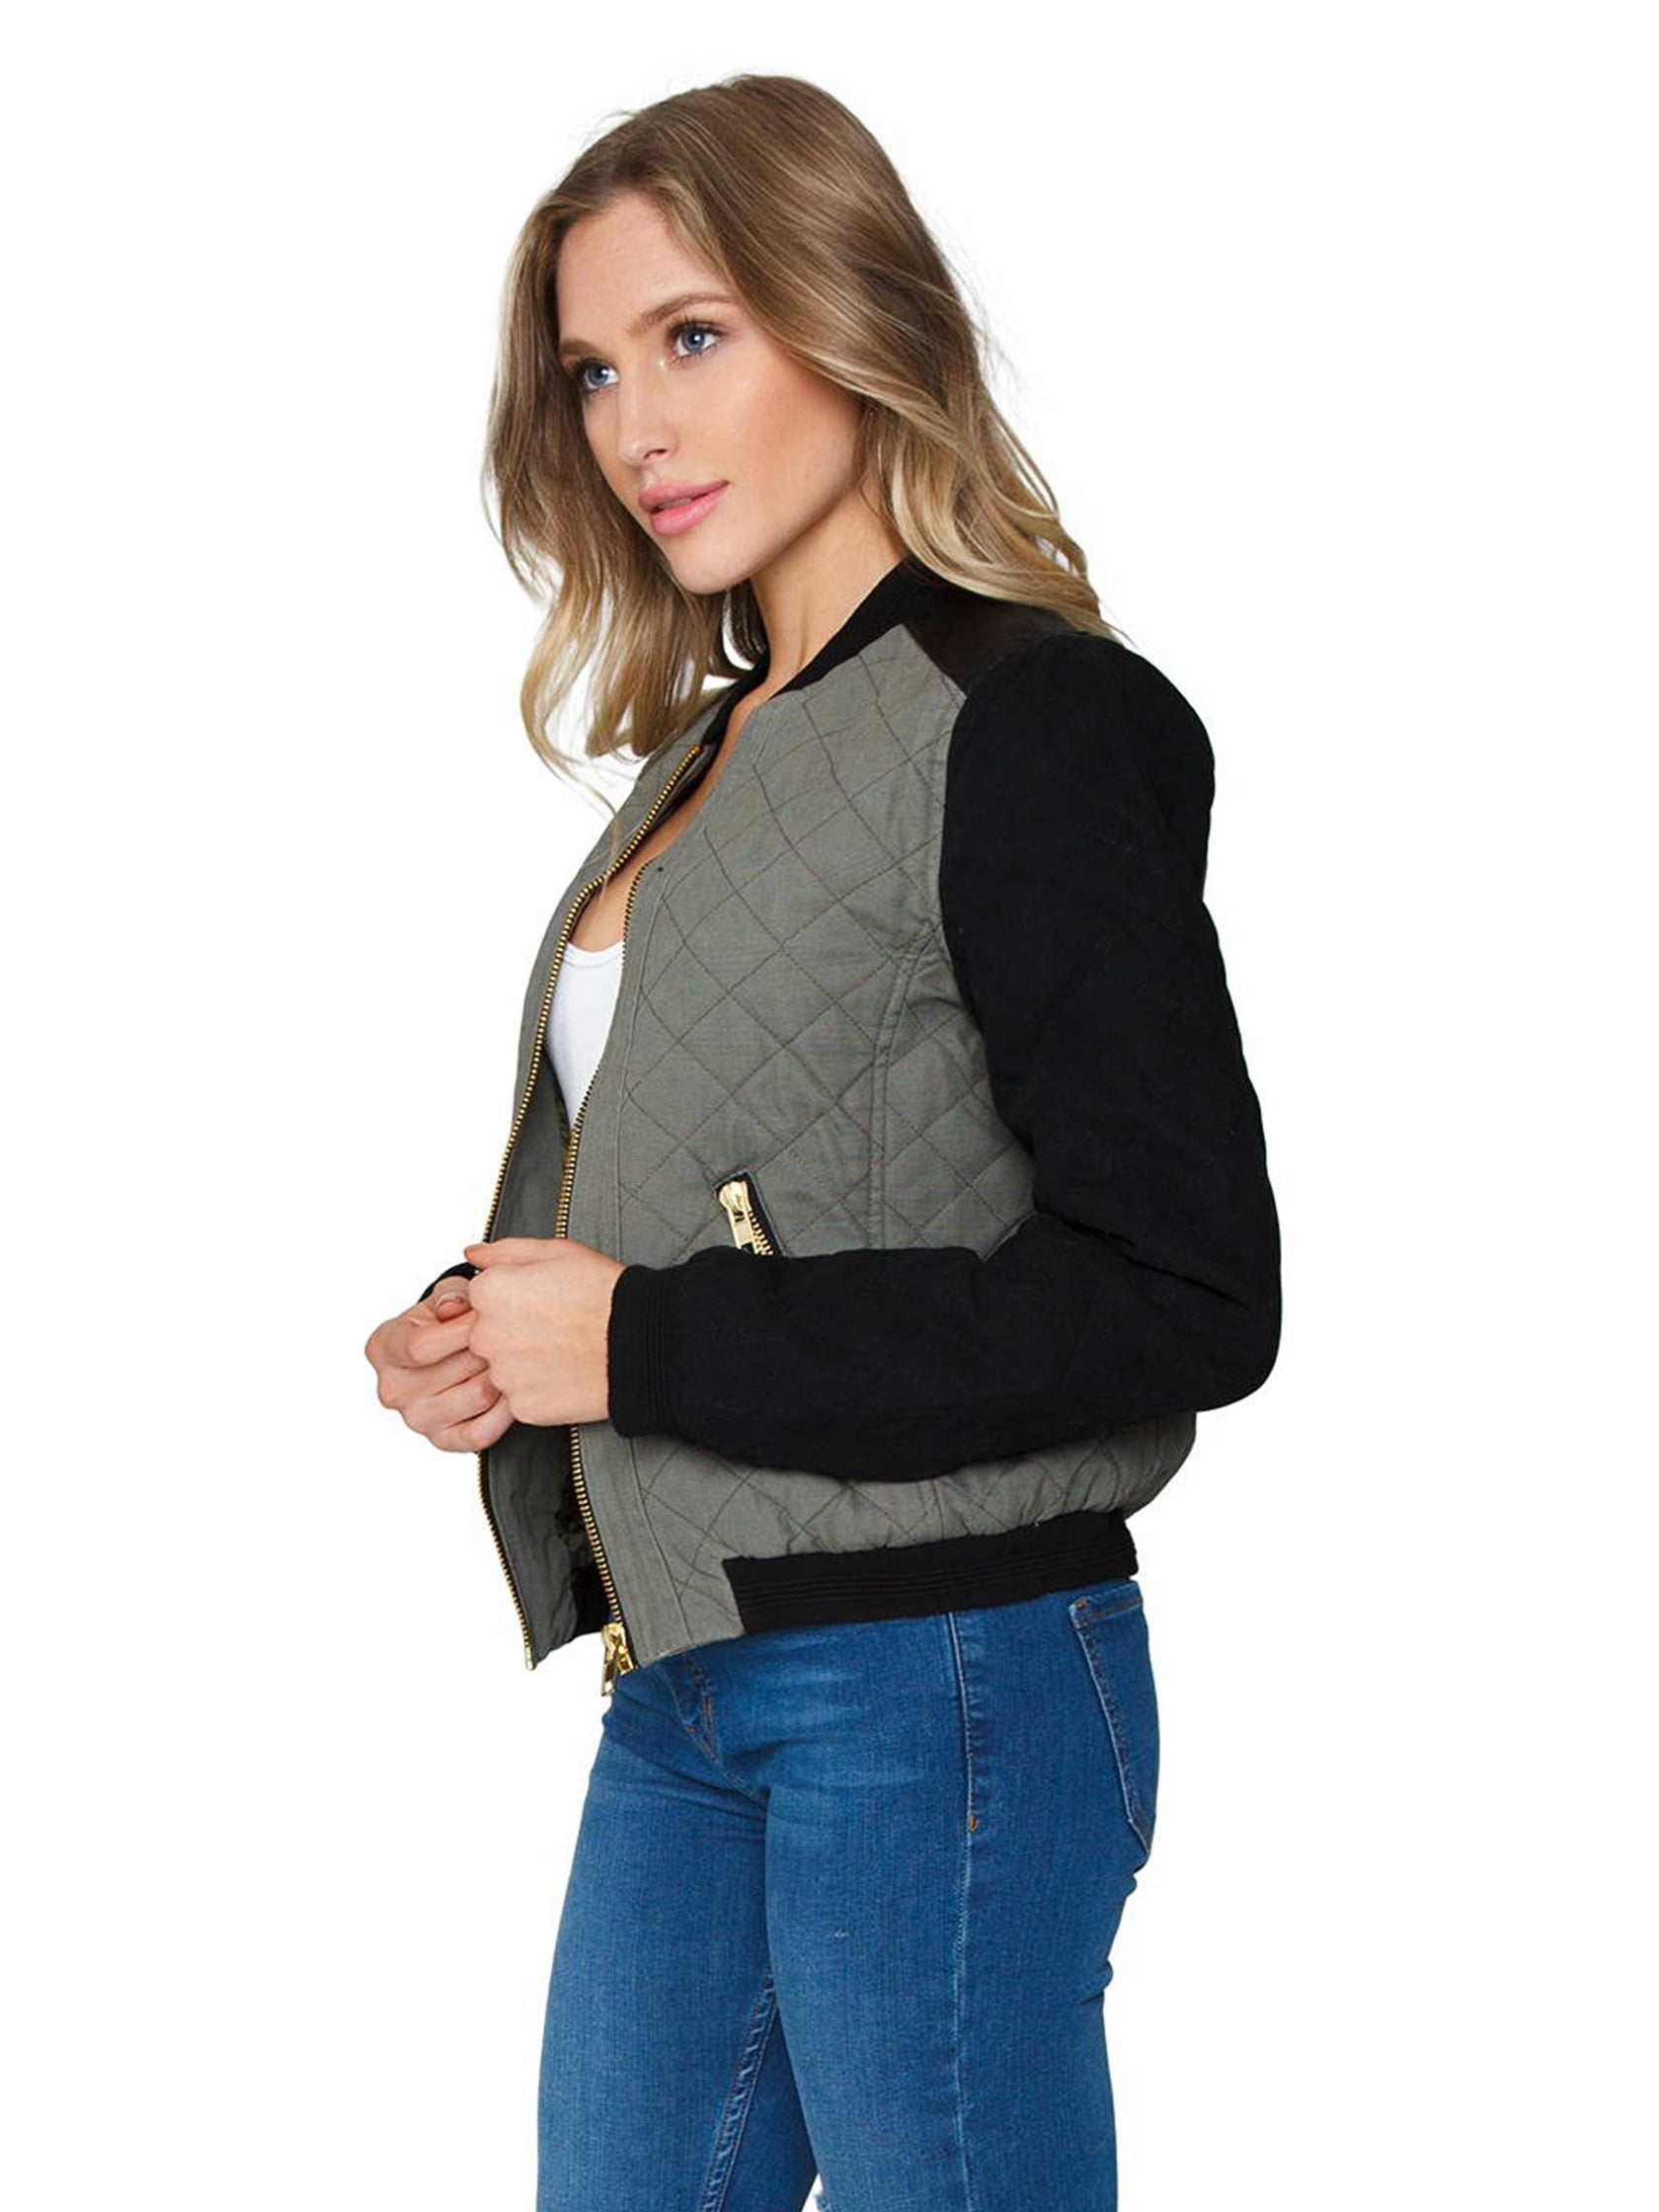 Women wearing a jacket rental from FashionPass called Quilted Bomber Jacket